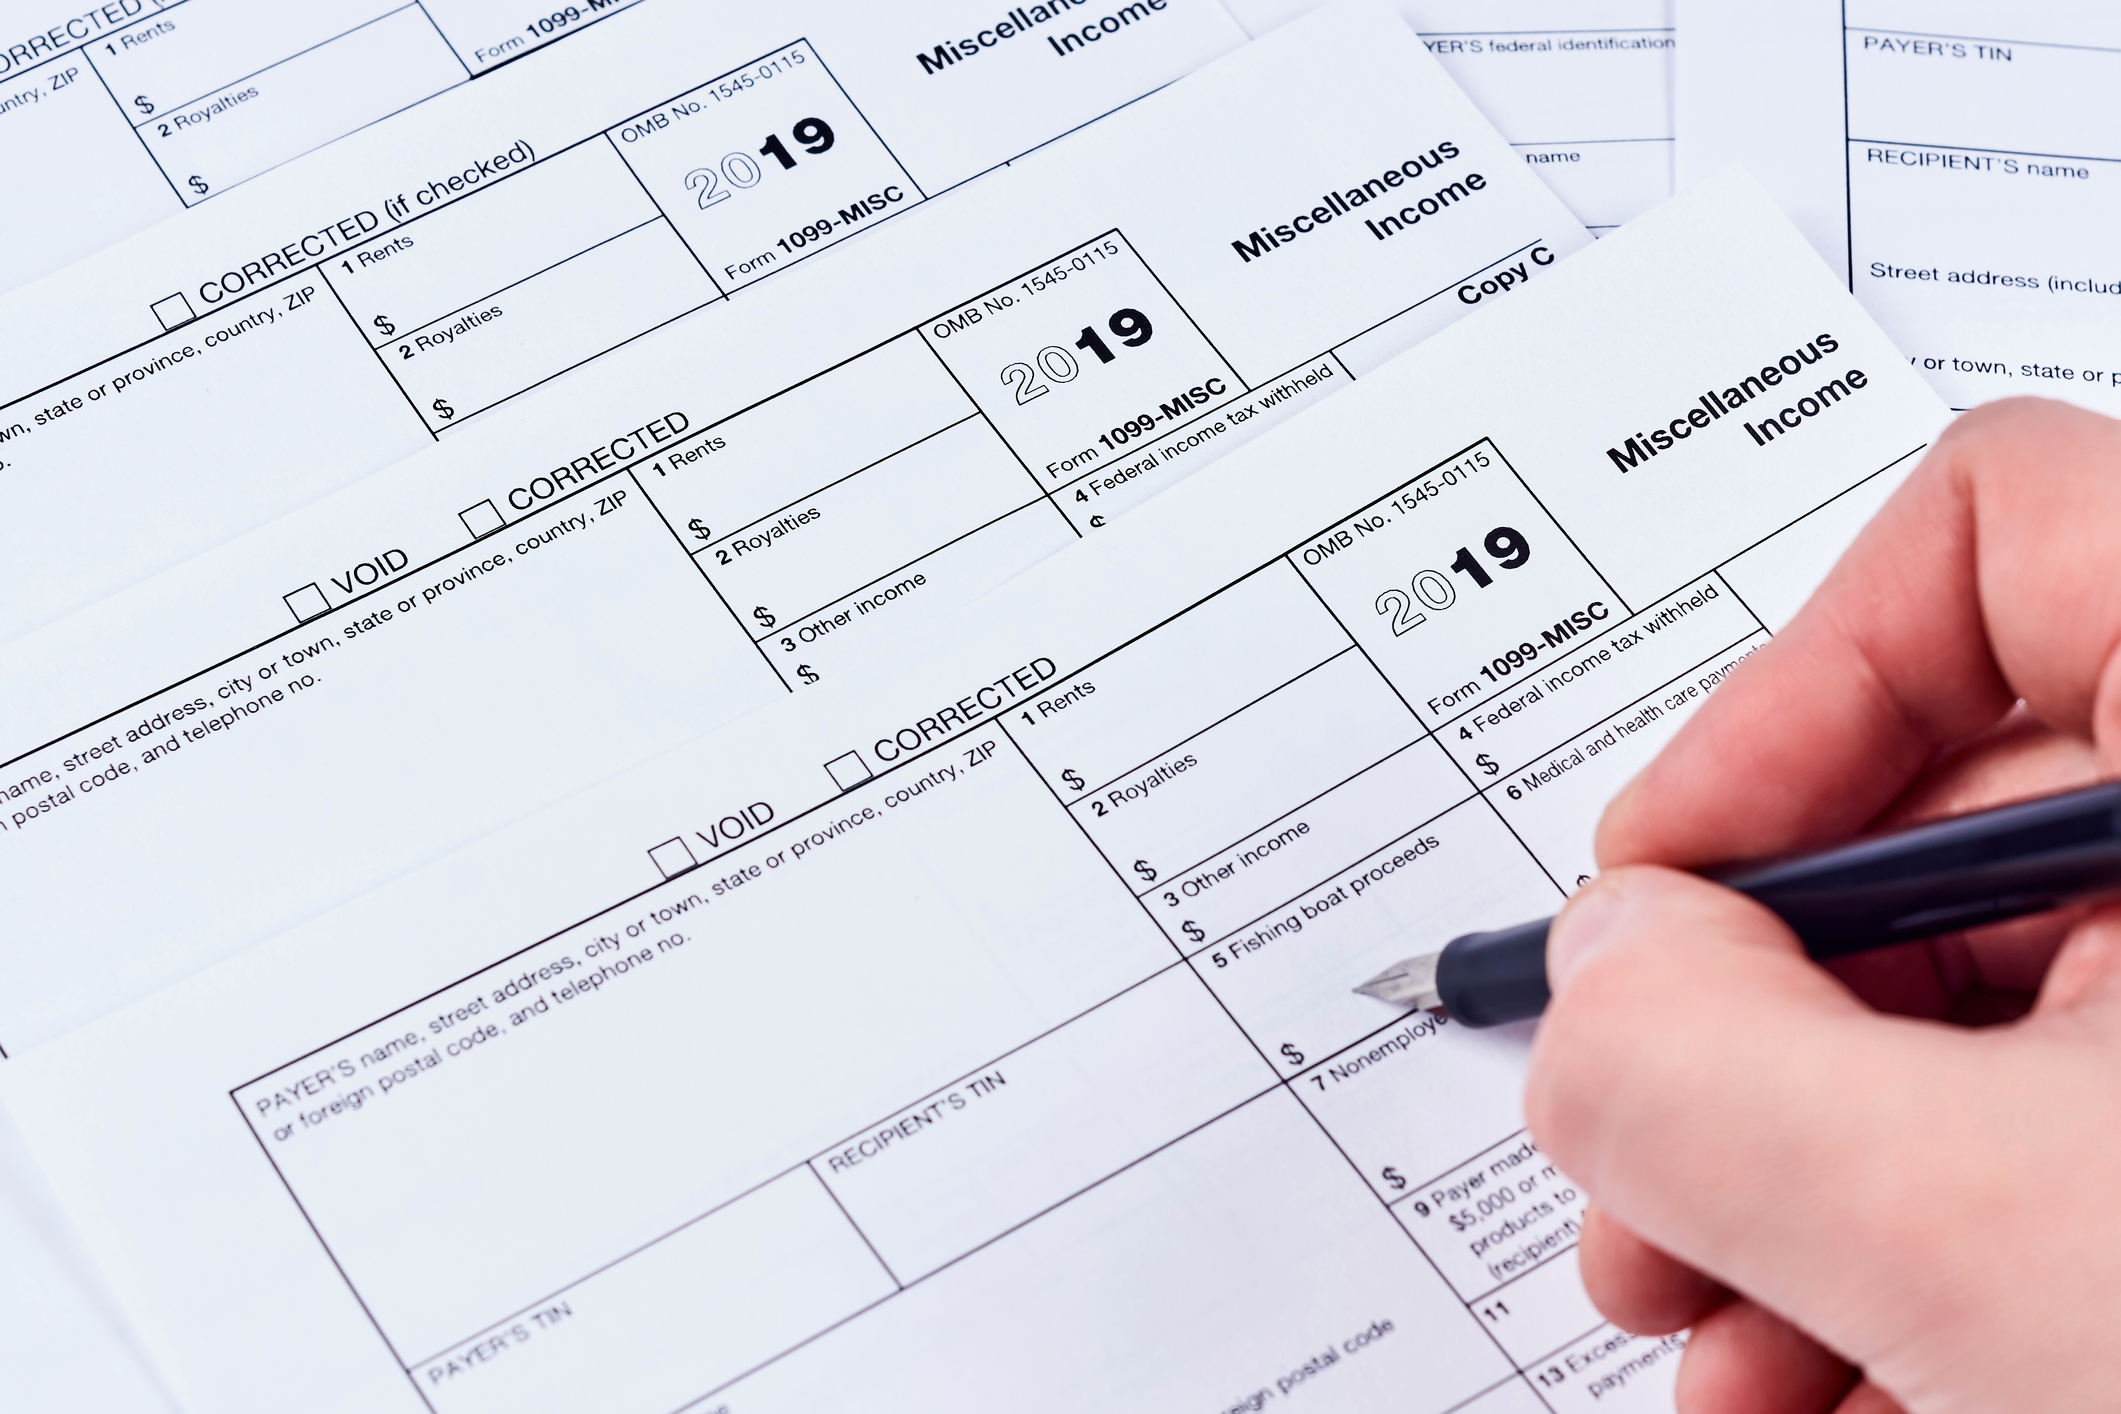 Person filling out a miscellaneous income tax form.